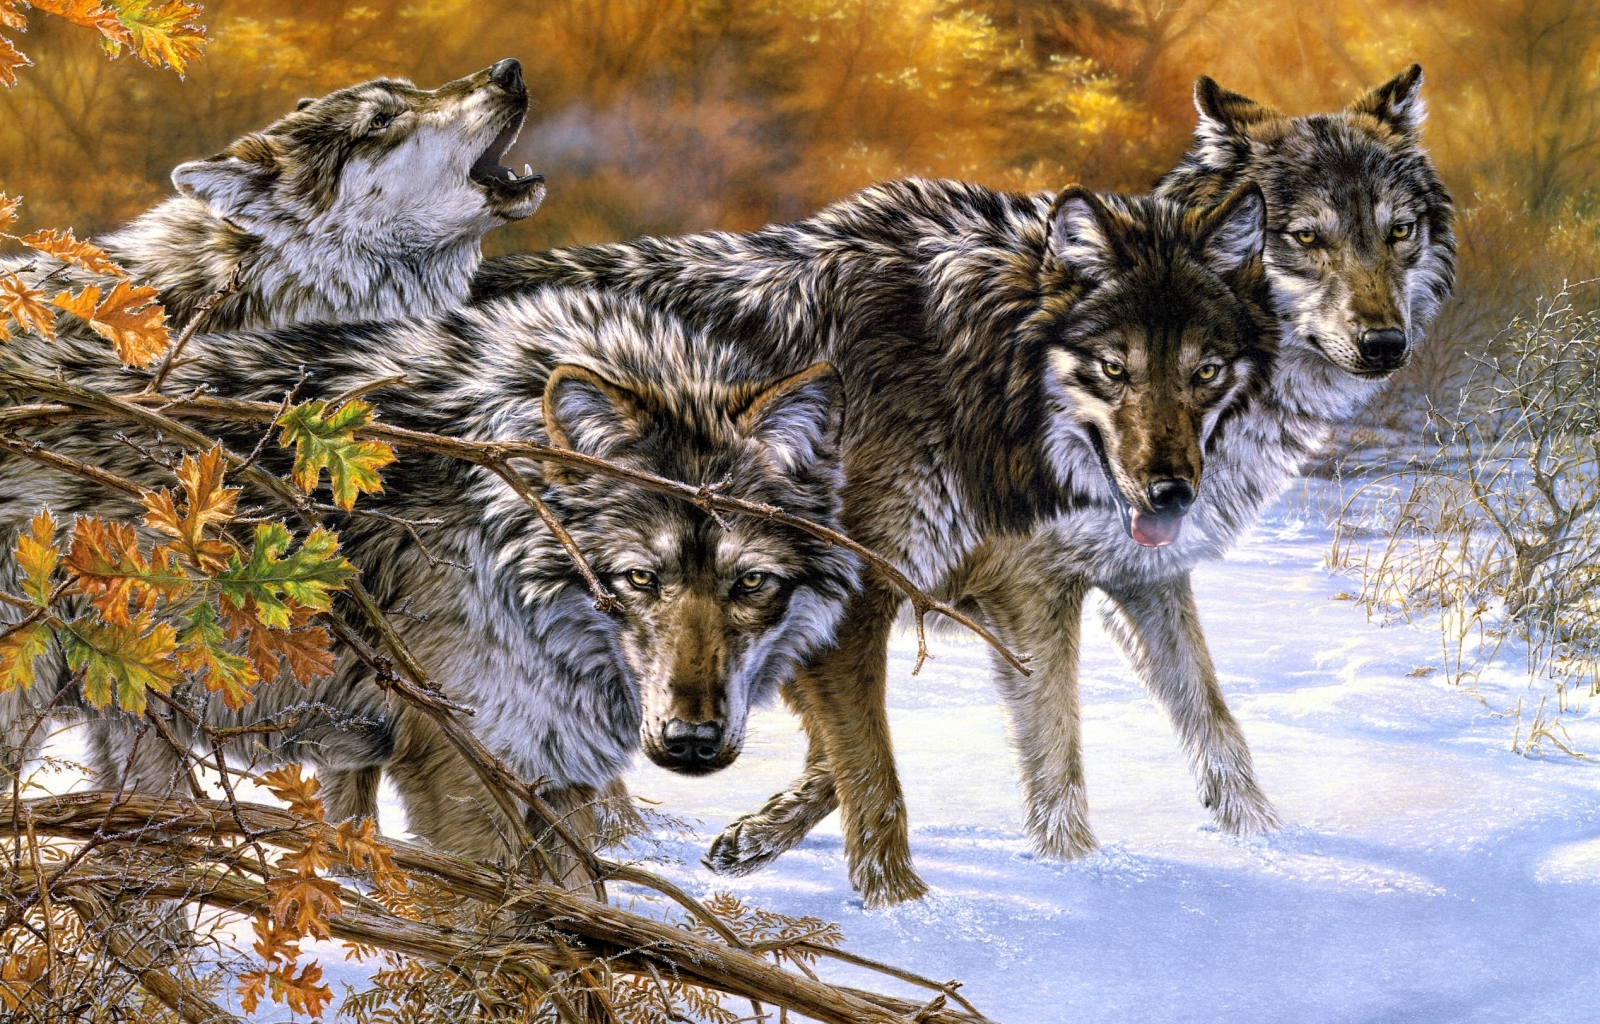 27039 download wallpaper Animals, Wolfs, Snow, Pictures screensavers and pictures for free